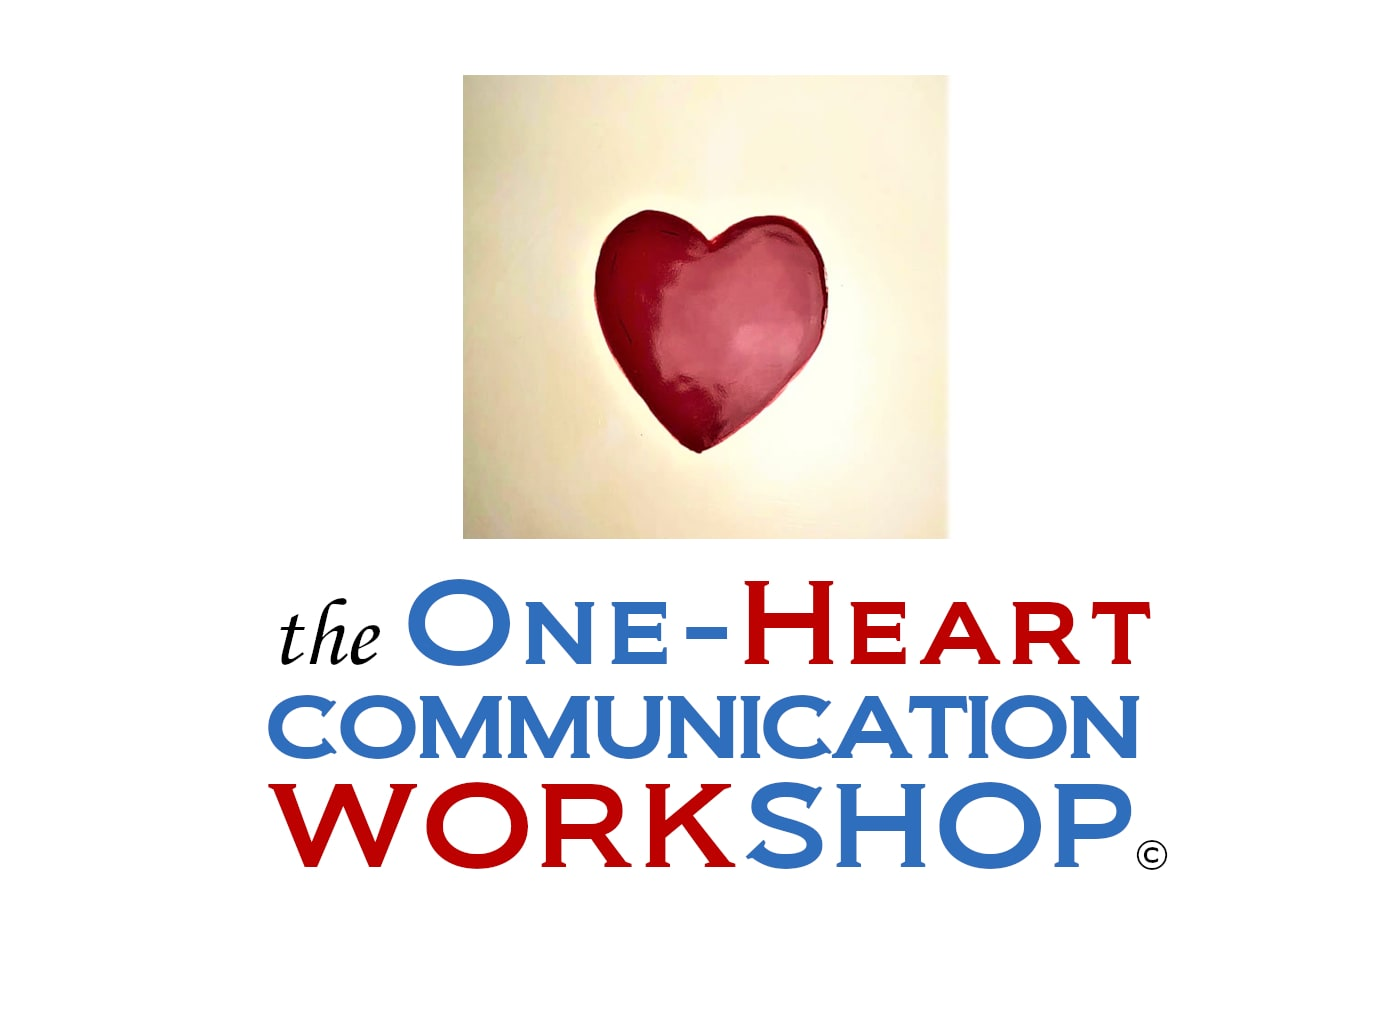 The One Heart Communication Workshop